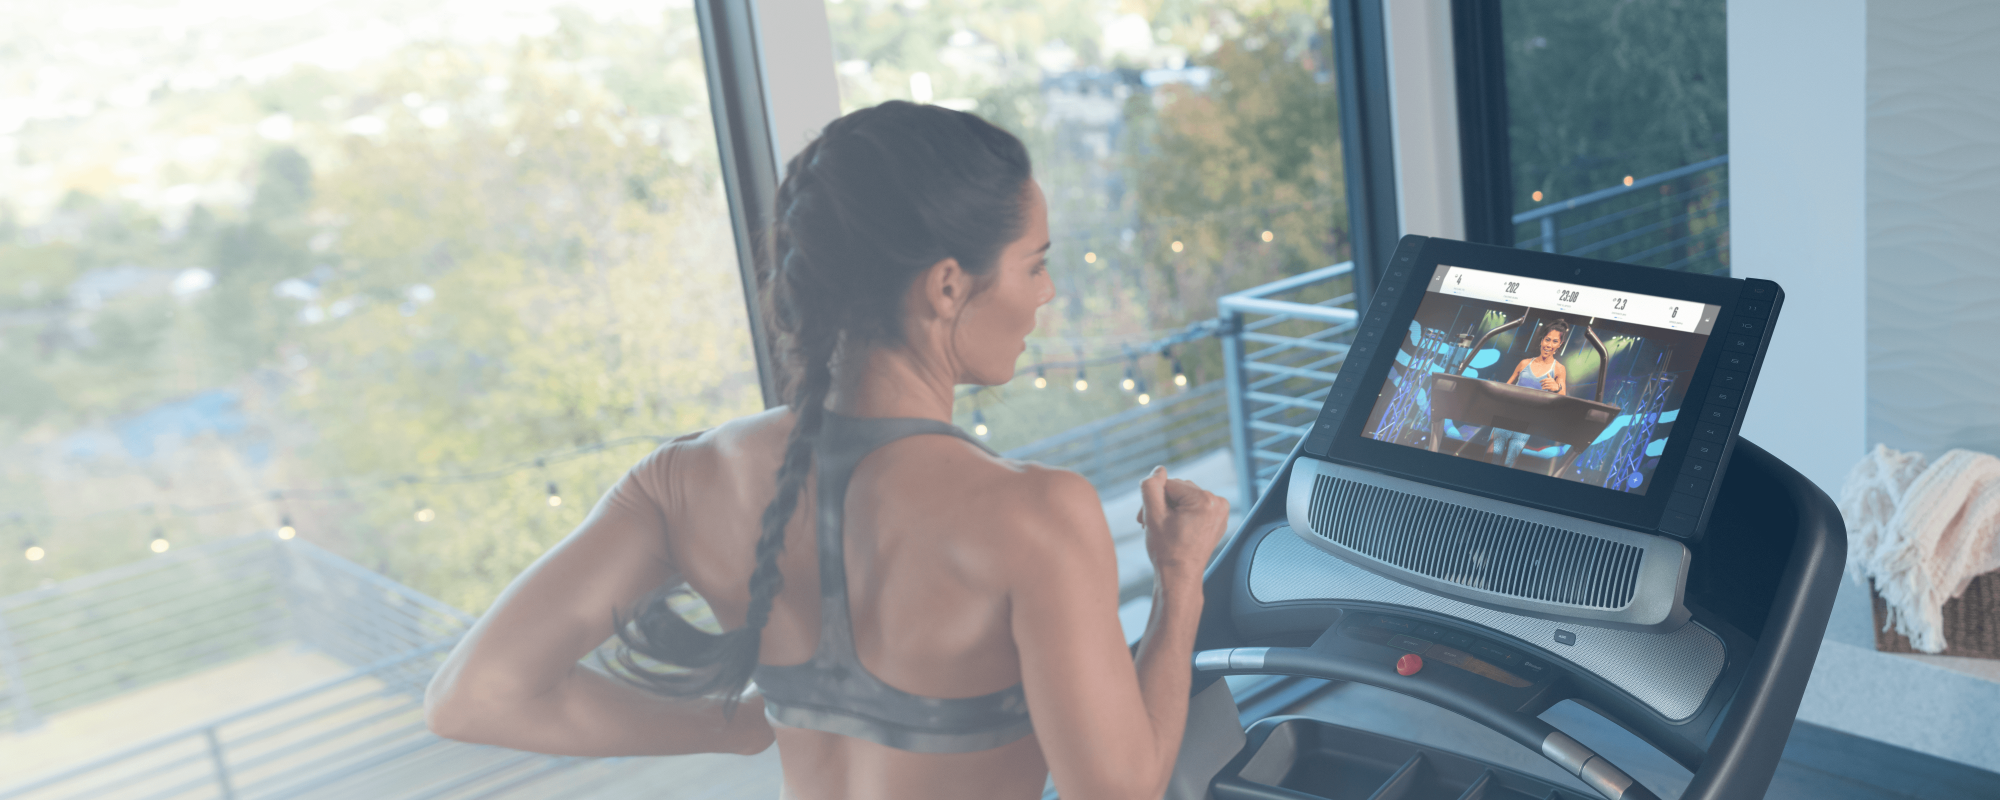 iFit Blog - Workouts, Healthy Recipes & Results  | iFit Blog